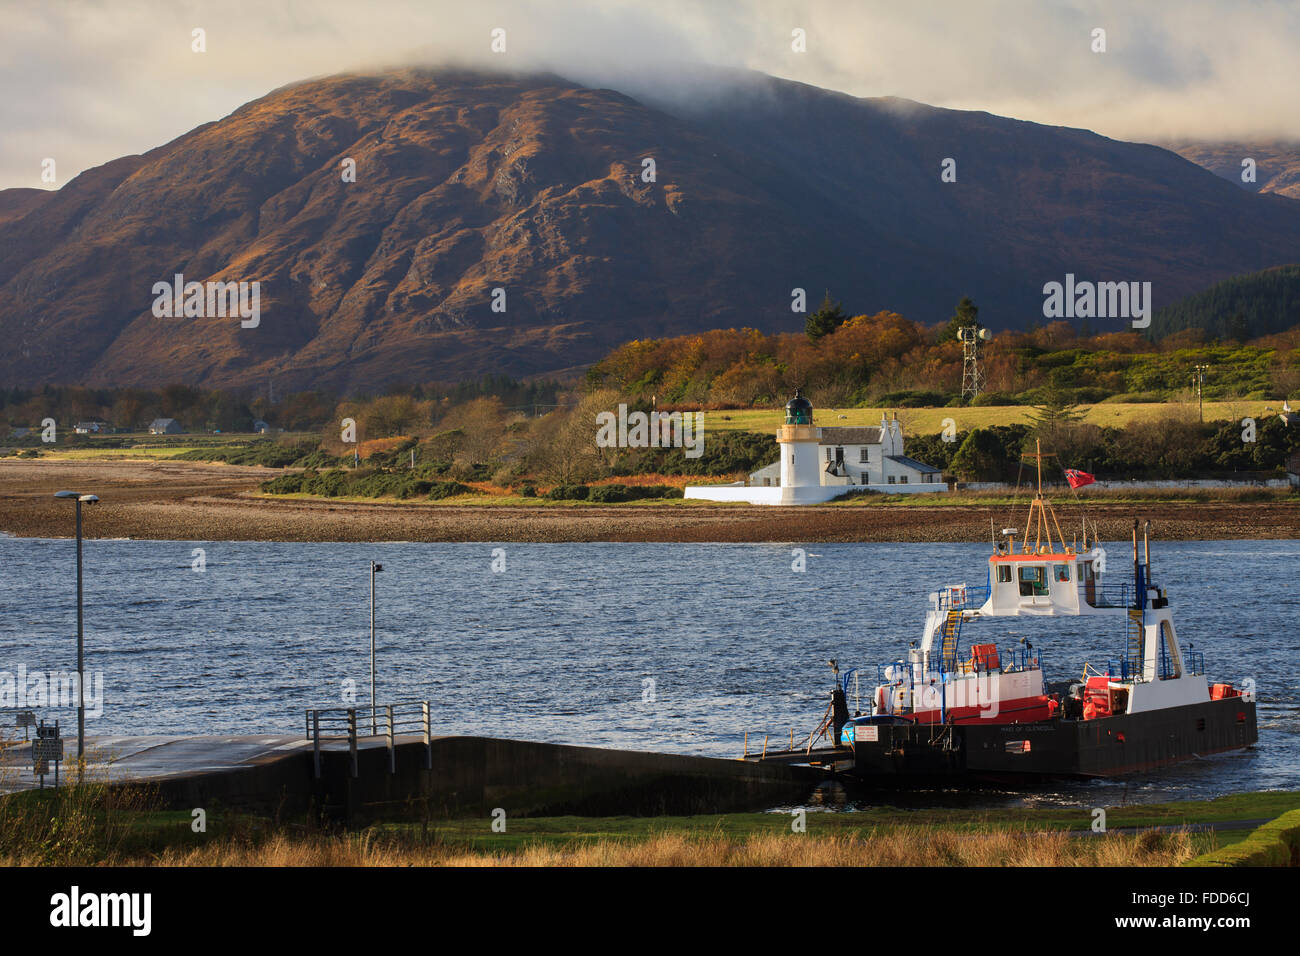 The Corran Ferry near Fort William in the Scottish Highlands. Stock Photo